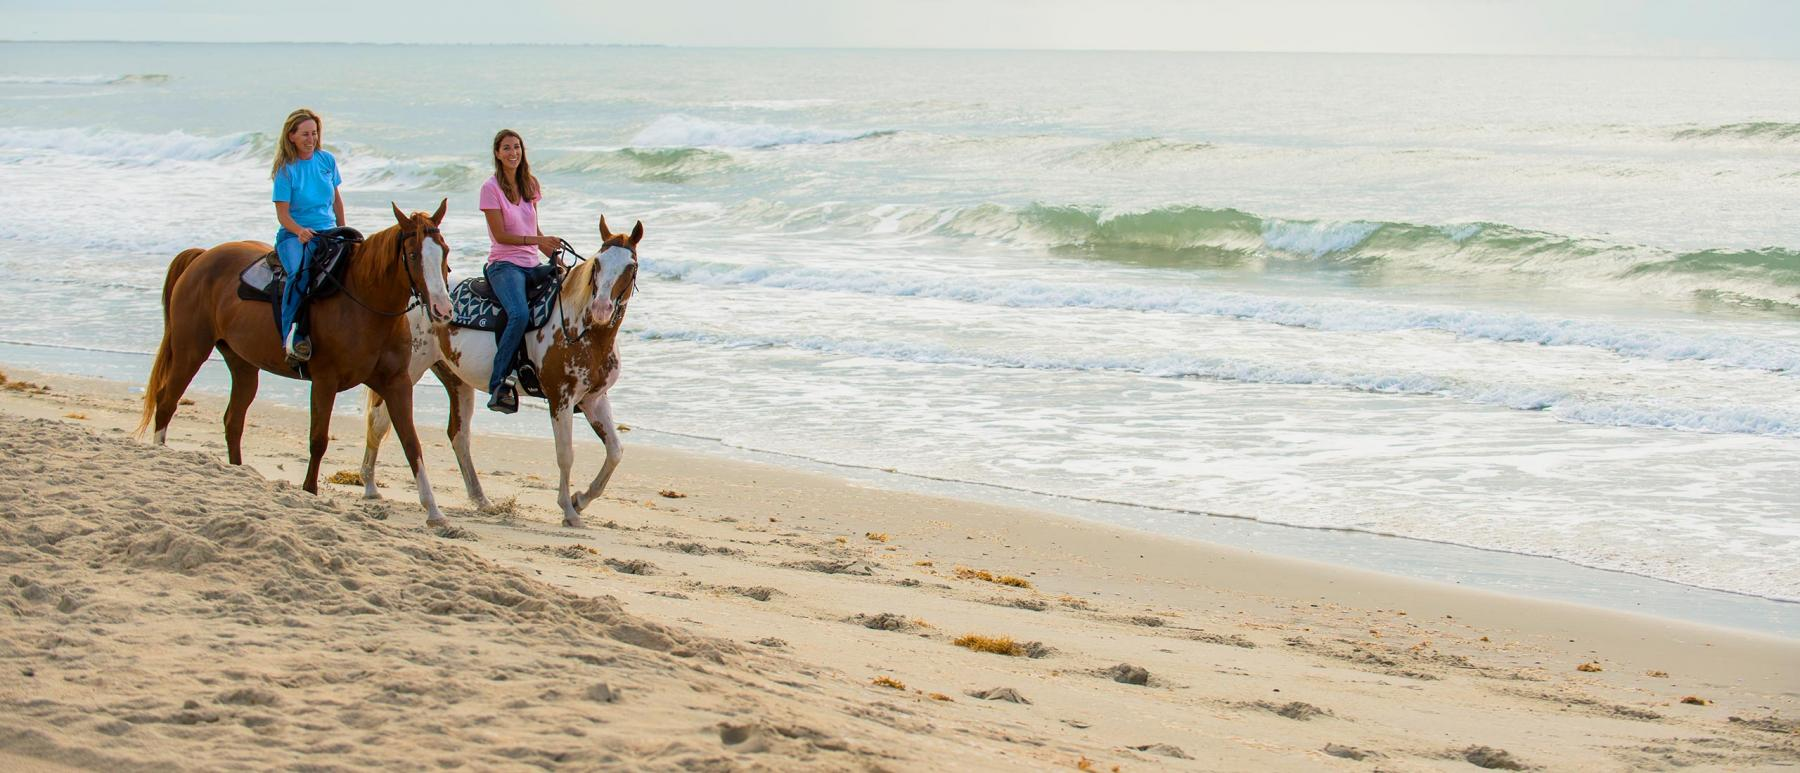 Horses on BeachHorseback riding on the beach